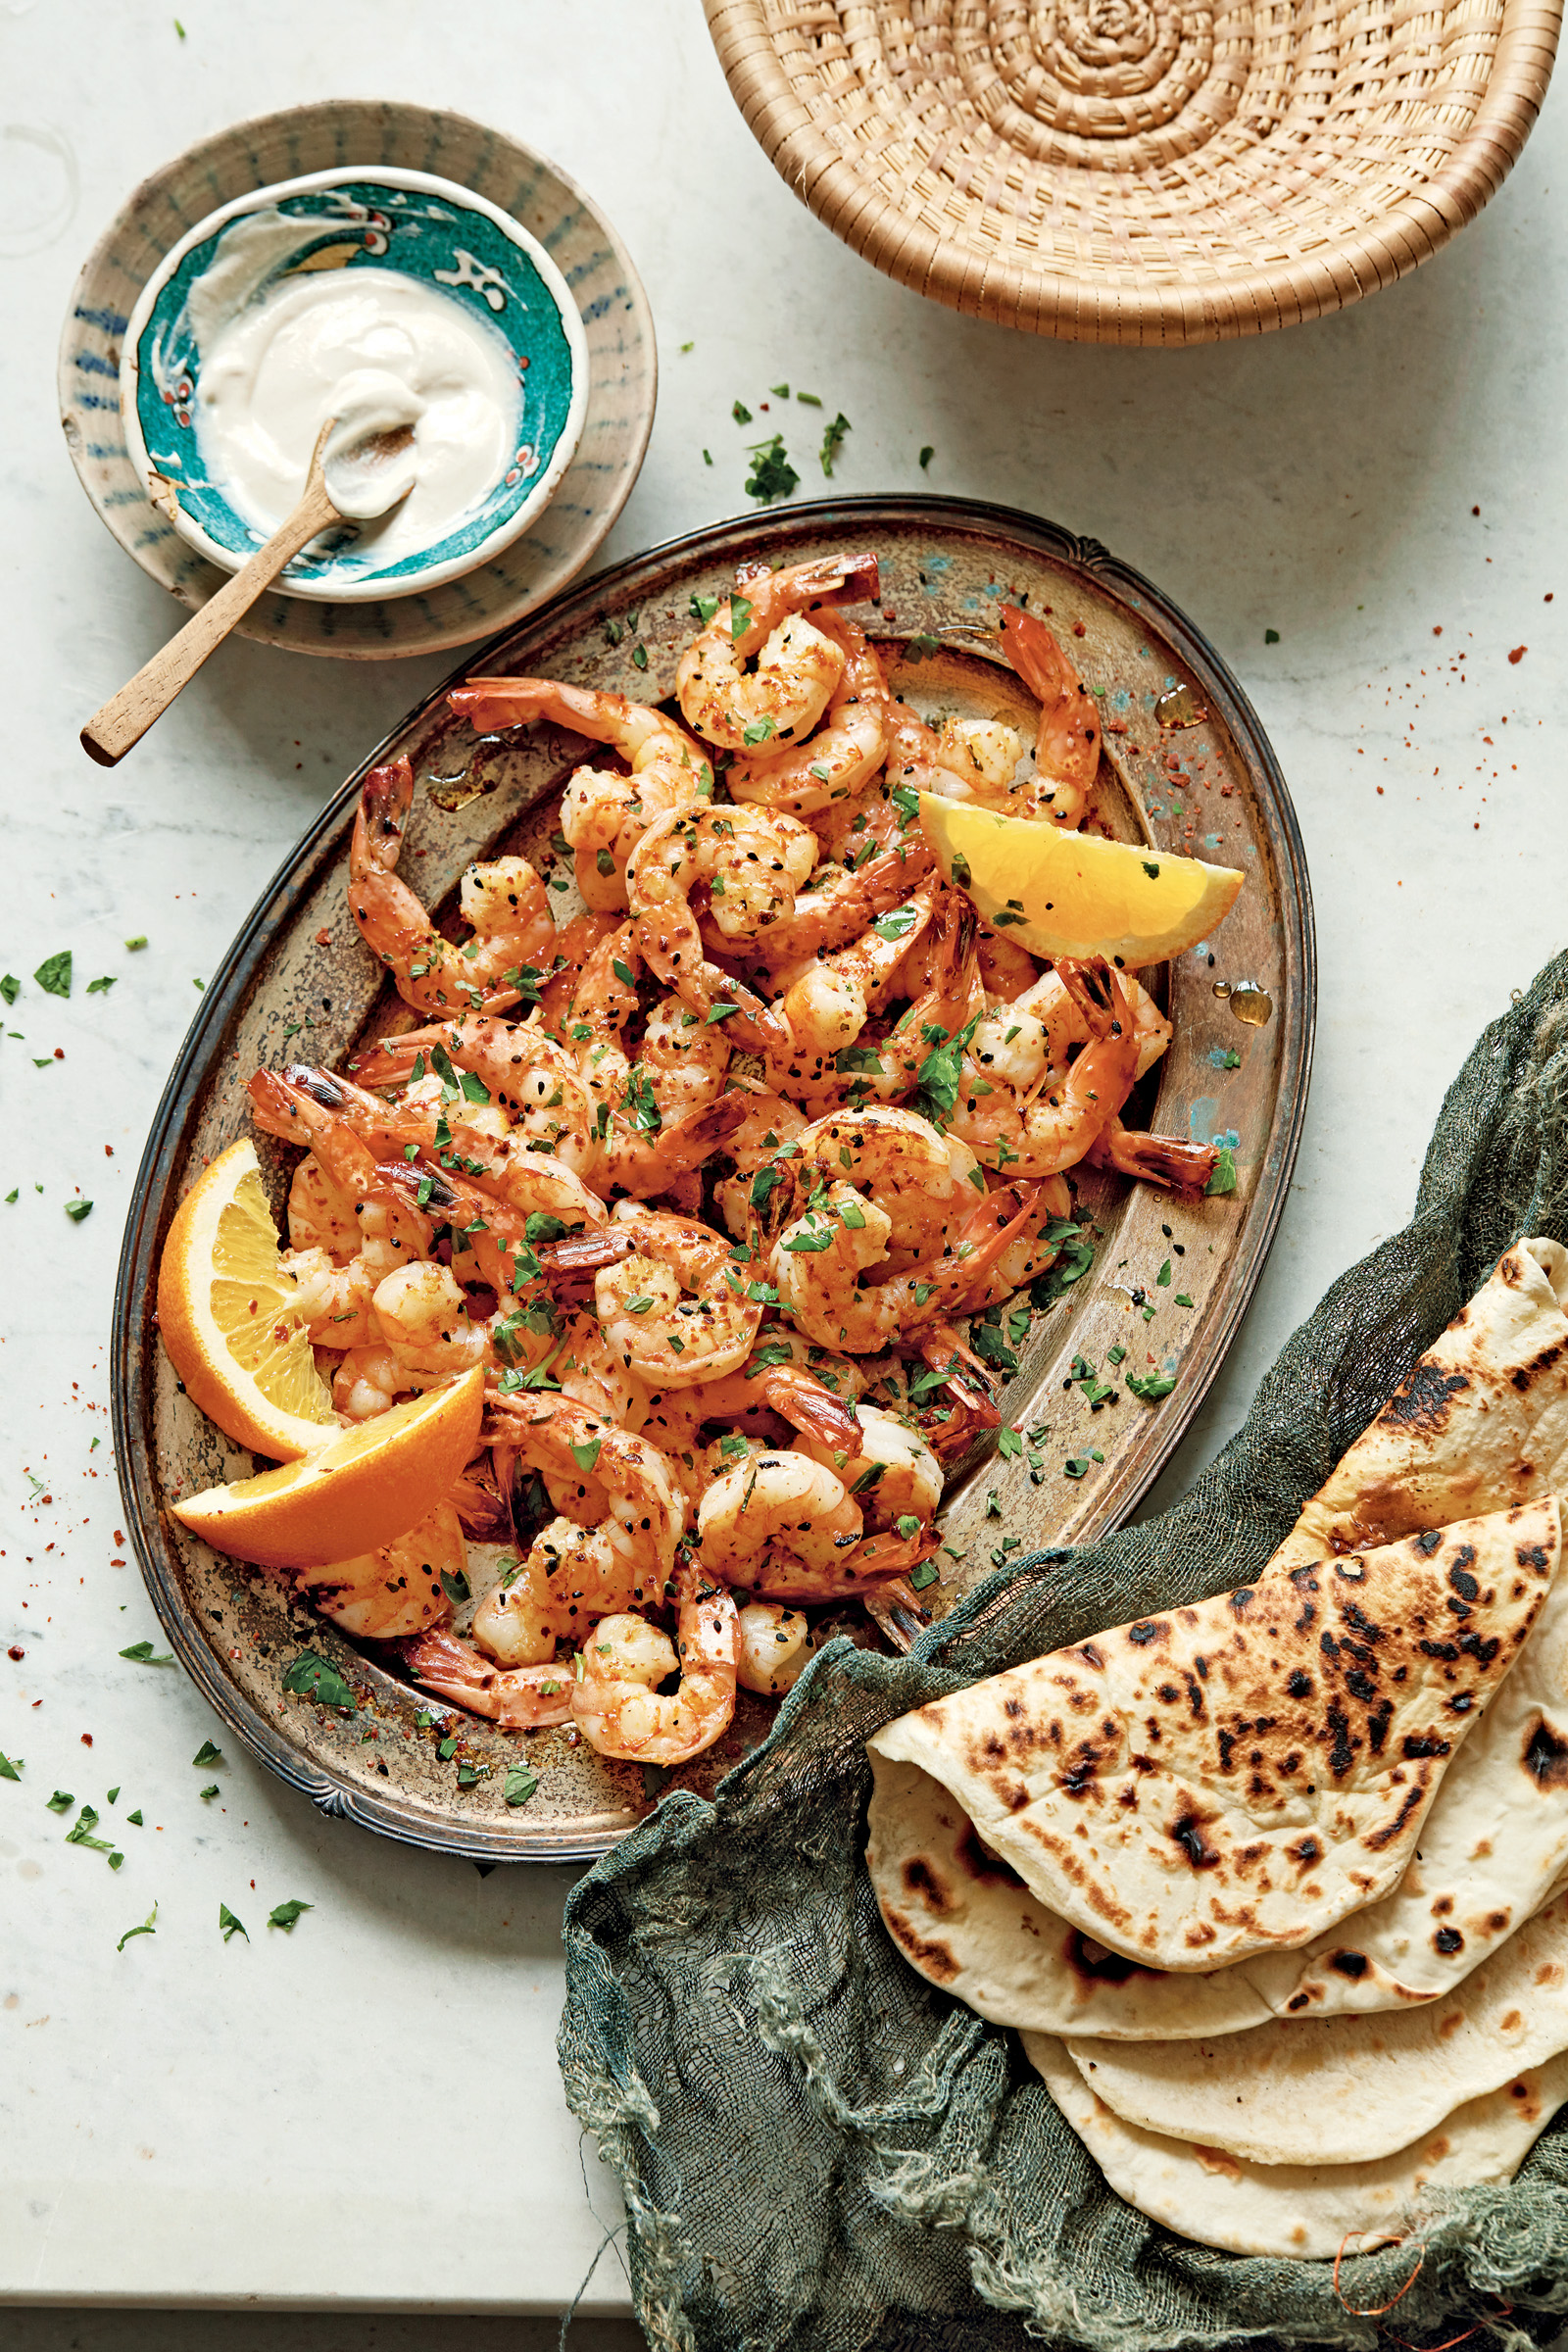 MARINATEDSHRIMP-2 Shrimp with orange zest is topped with nigella seeds, also known as black onion seeds. Cumin seeds could be used instead of the nigella seeds.